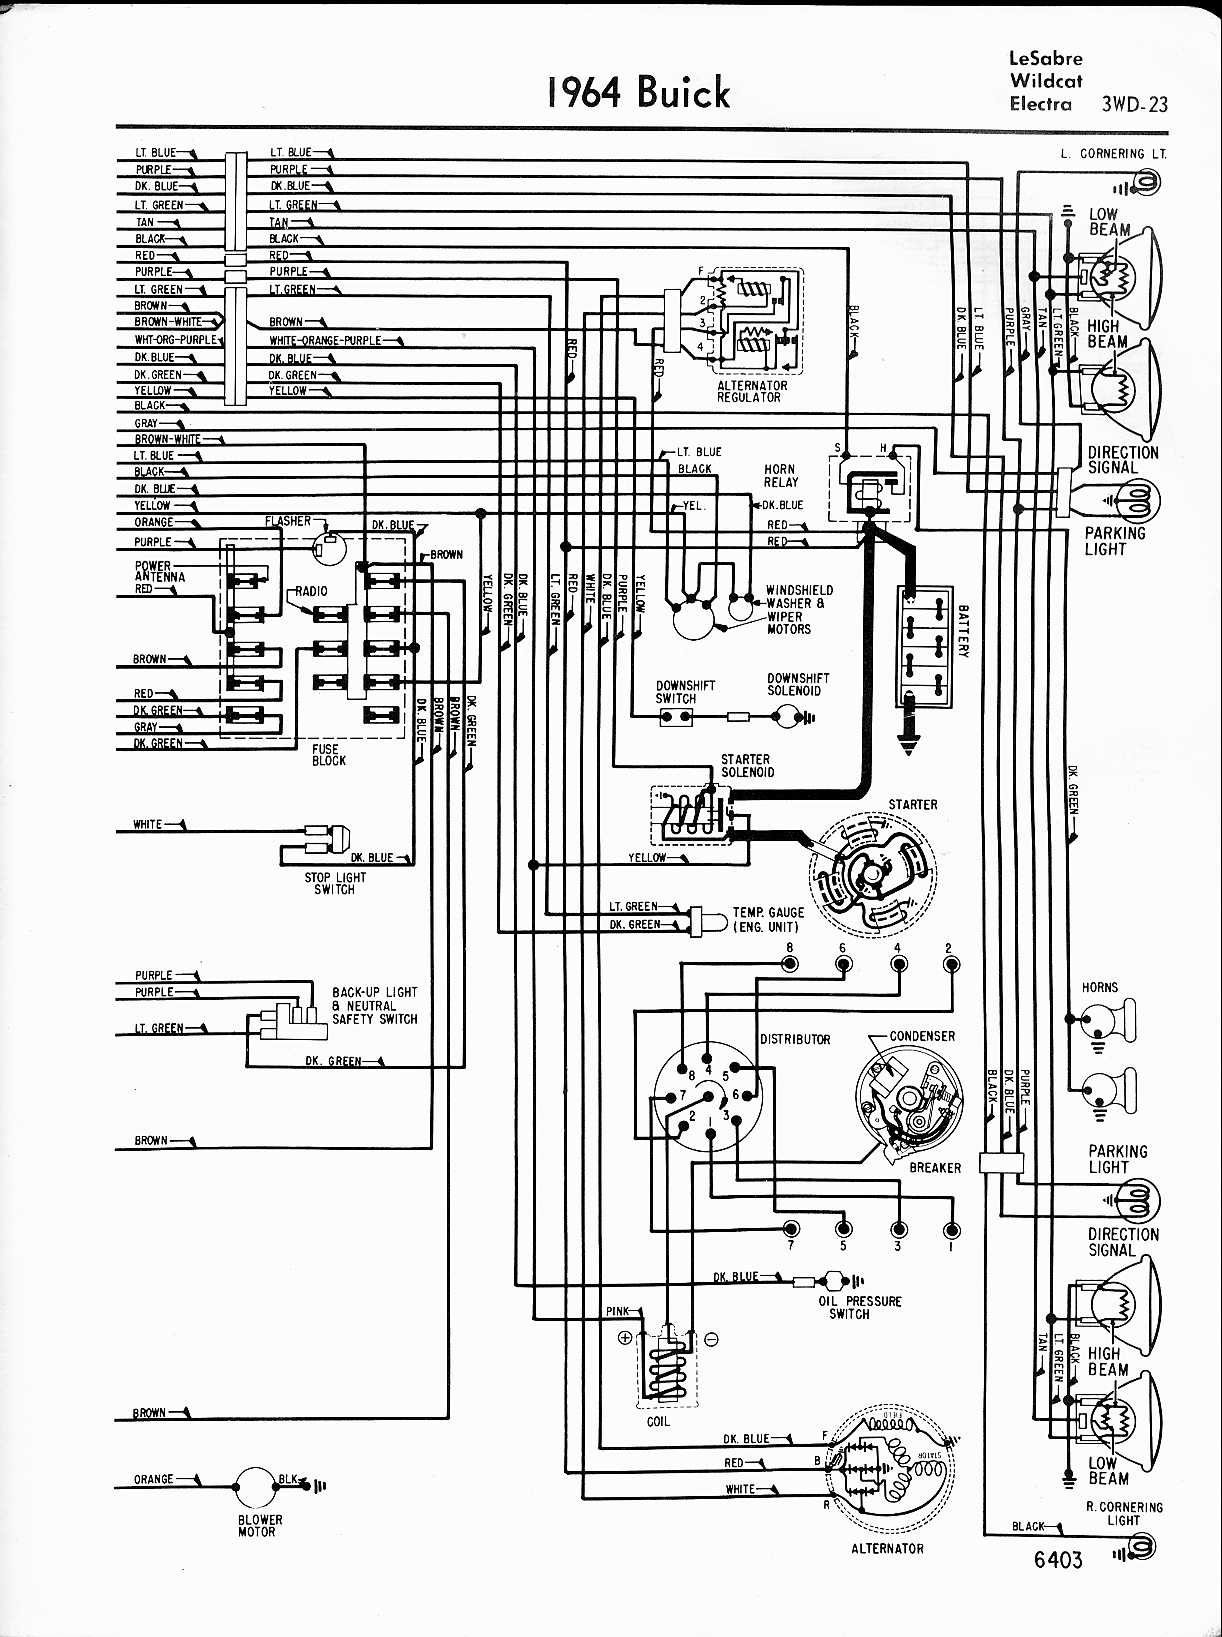 99 buick lesabre ac wiring diagram 1994 buick lesabre horn wiring diagram generous bmw e46 wiring harness diagram photos ...